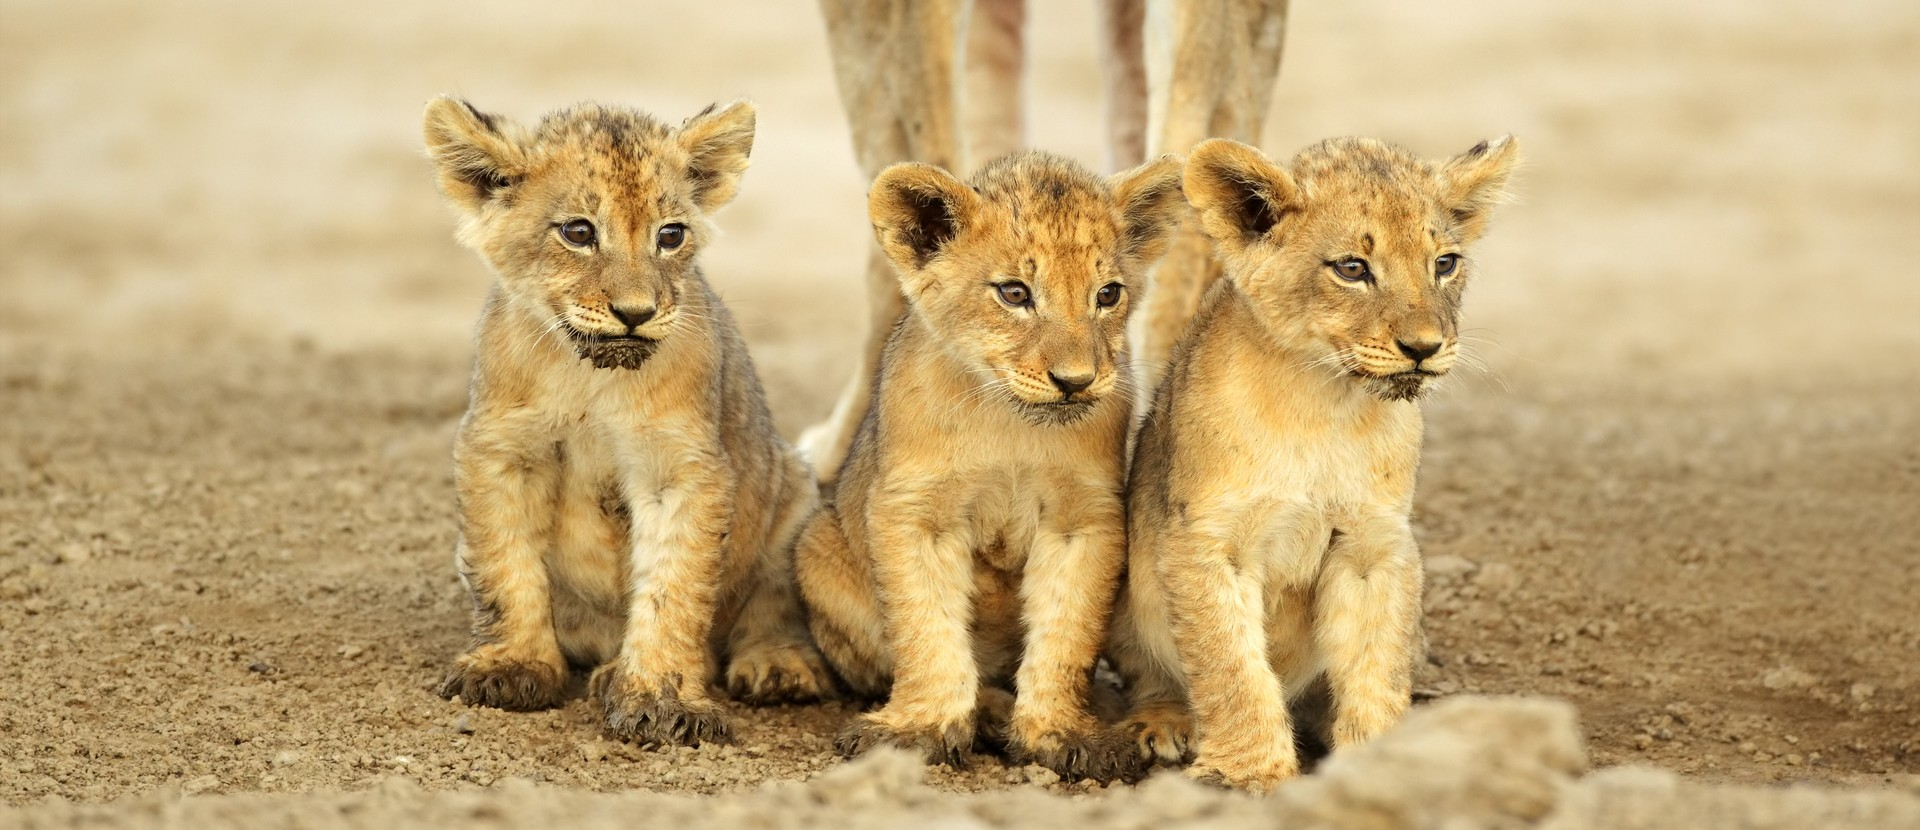 Lion cubs in south africa